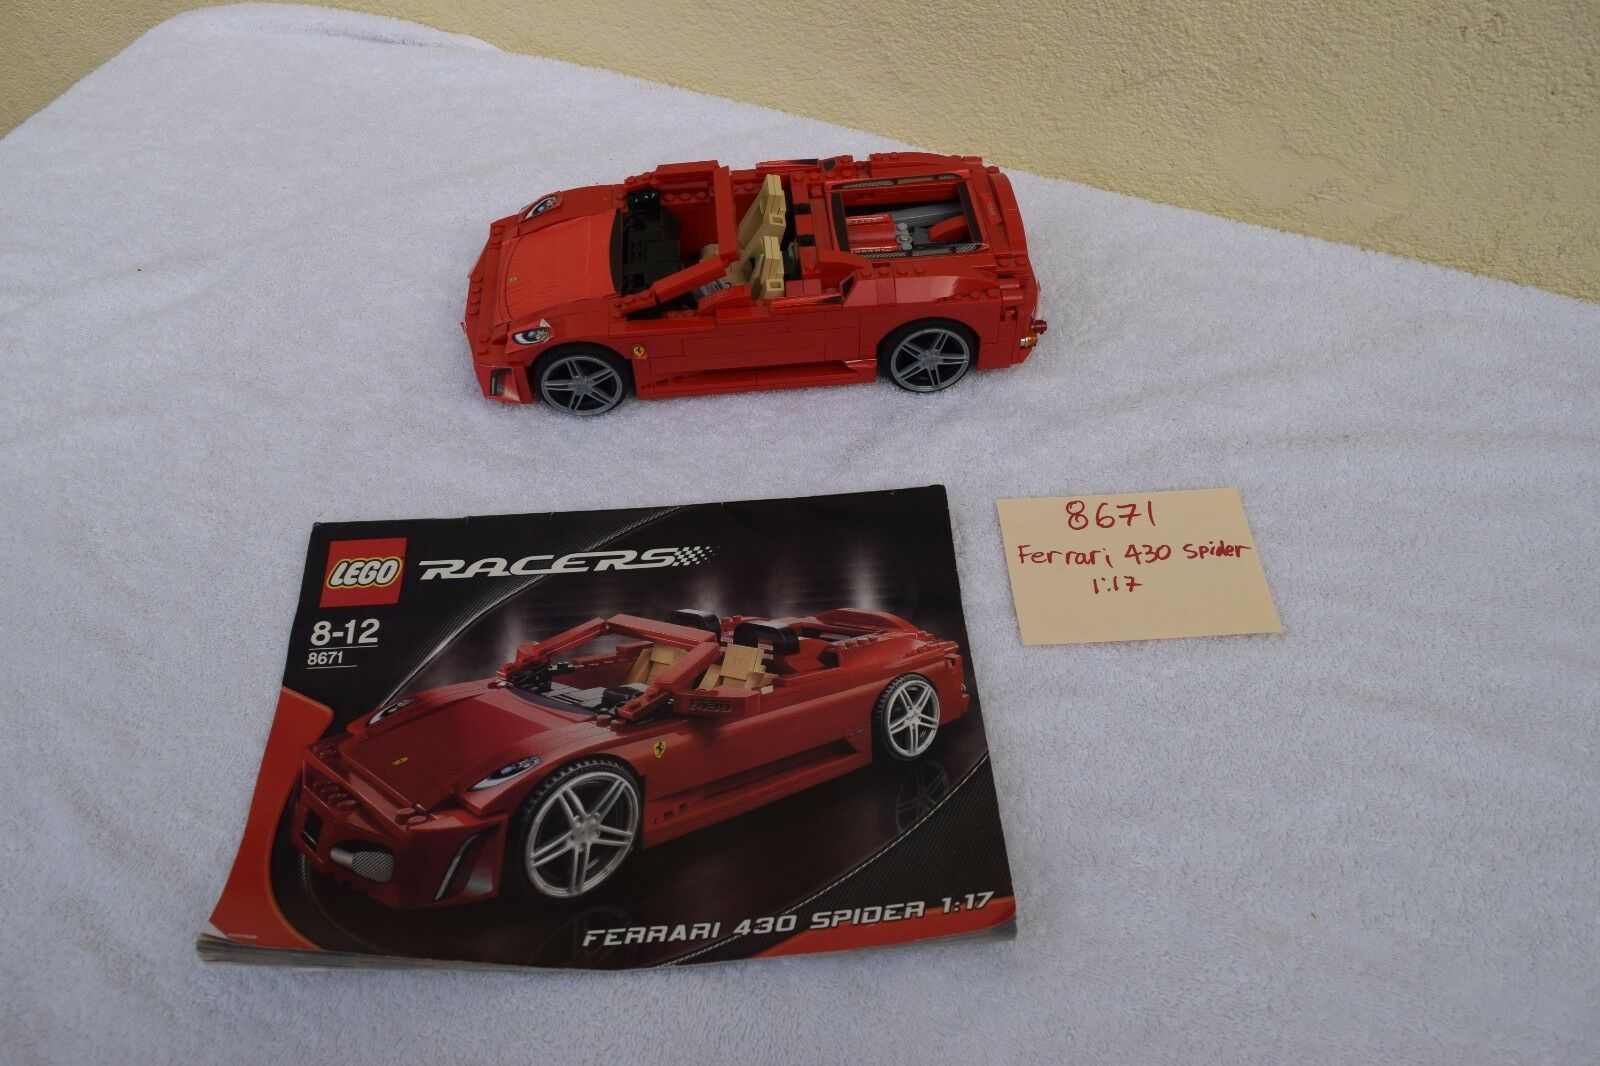 Lego Set 8671 Ferrari 430 Spider 1 1 1 17 scale RACERS 98% complete FAST SHIPPING ba3f06